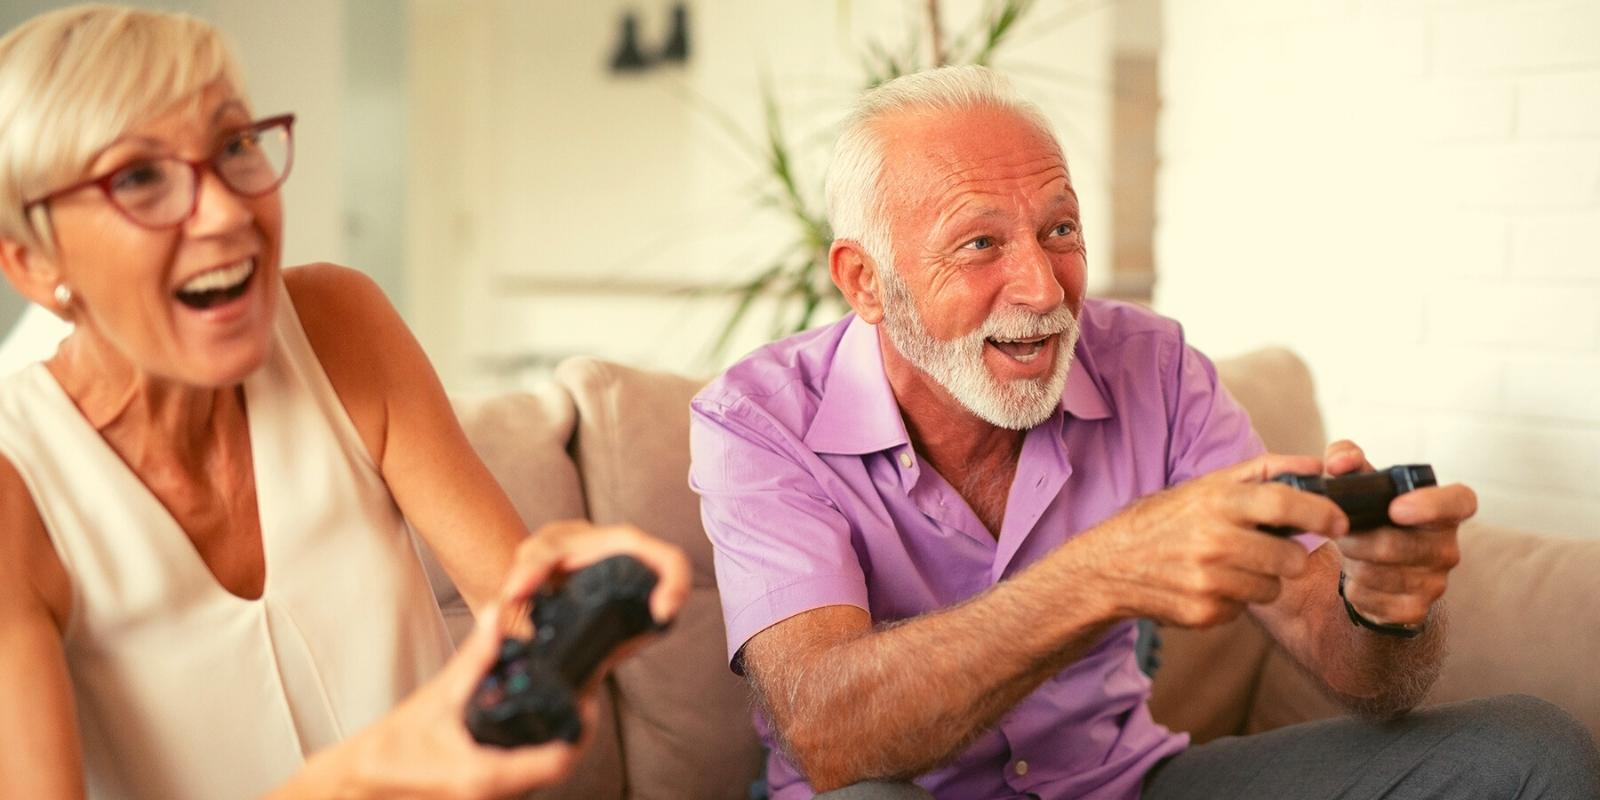 Elderly couple enjoying playing computer games for senior citizens together.